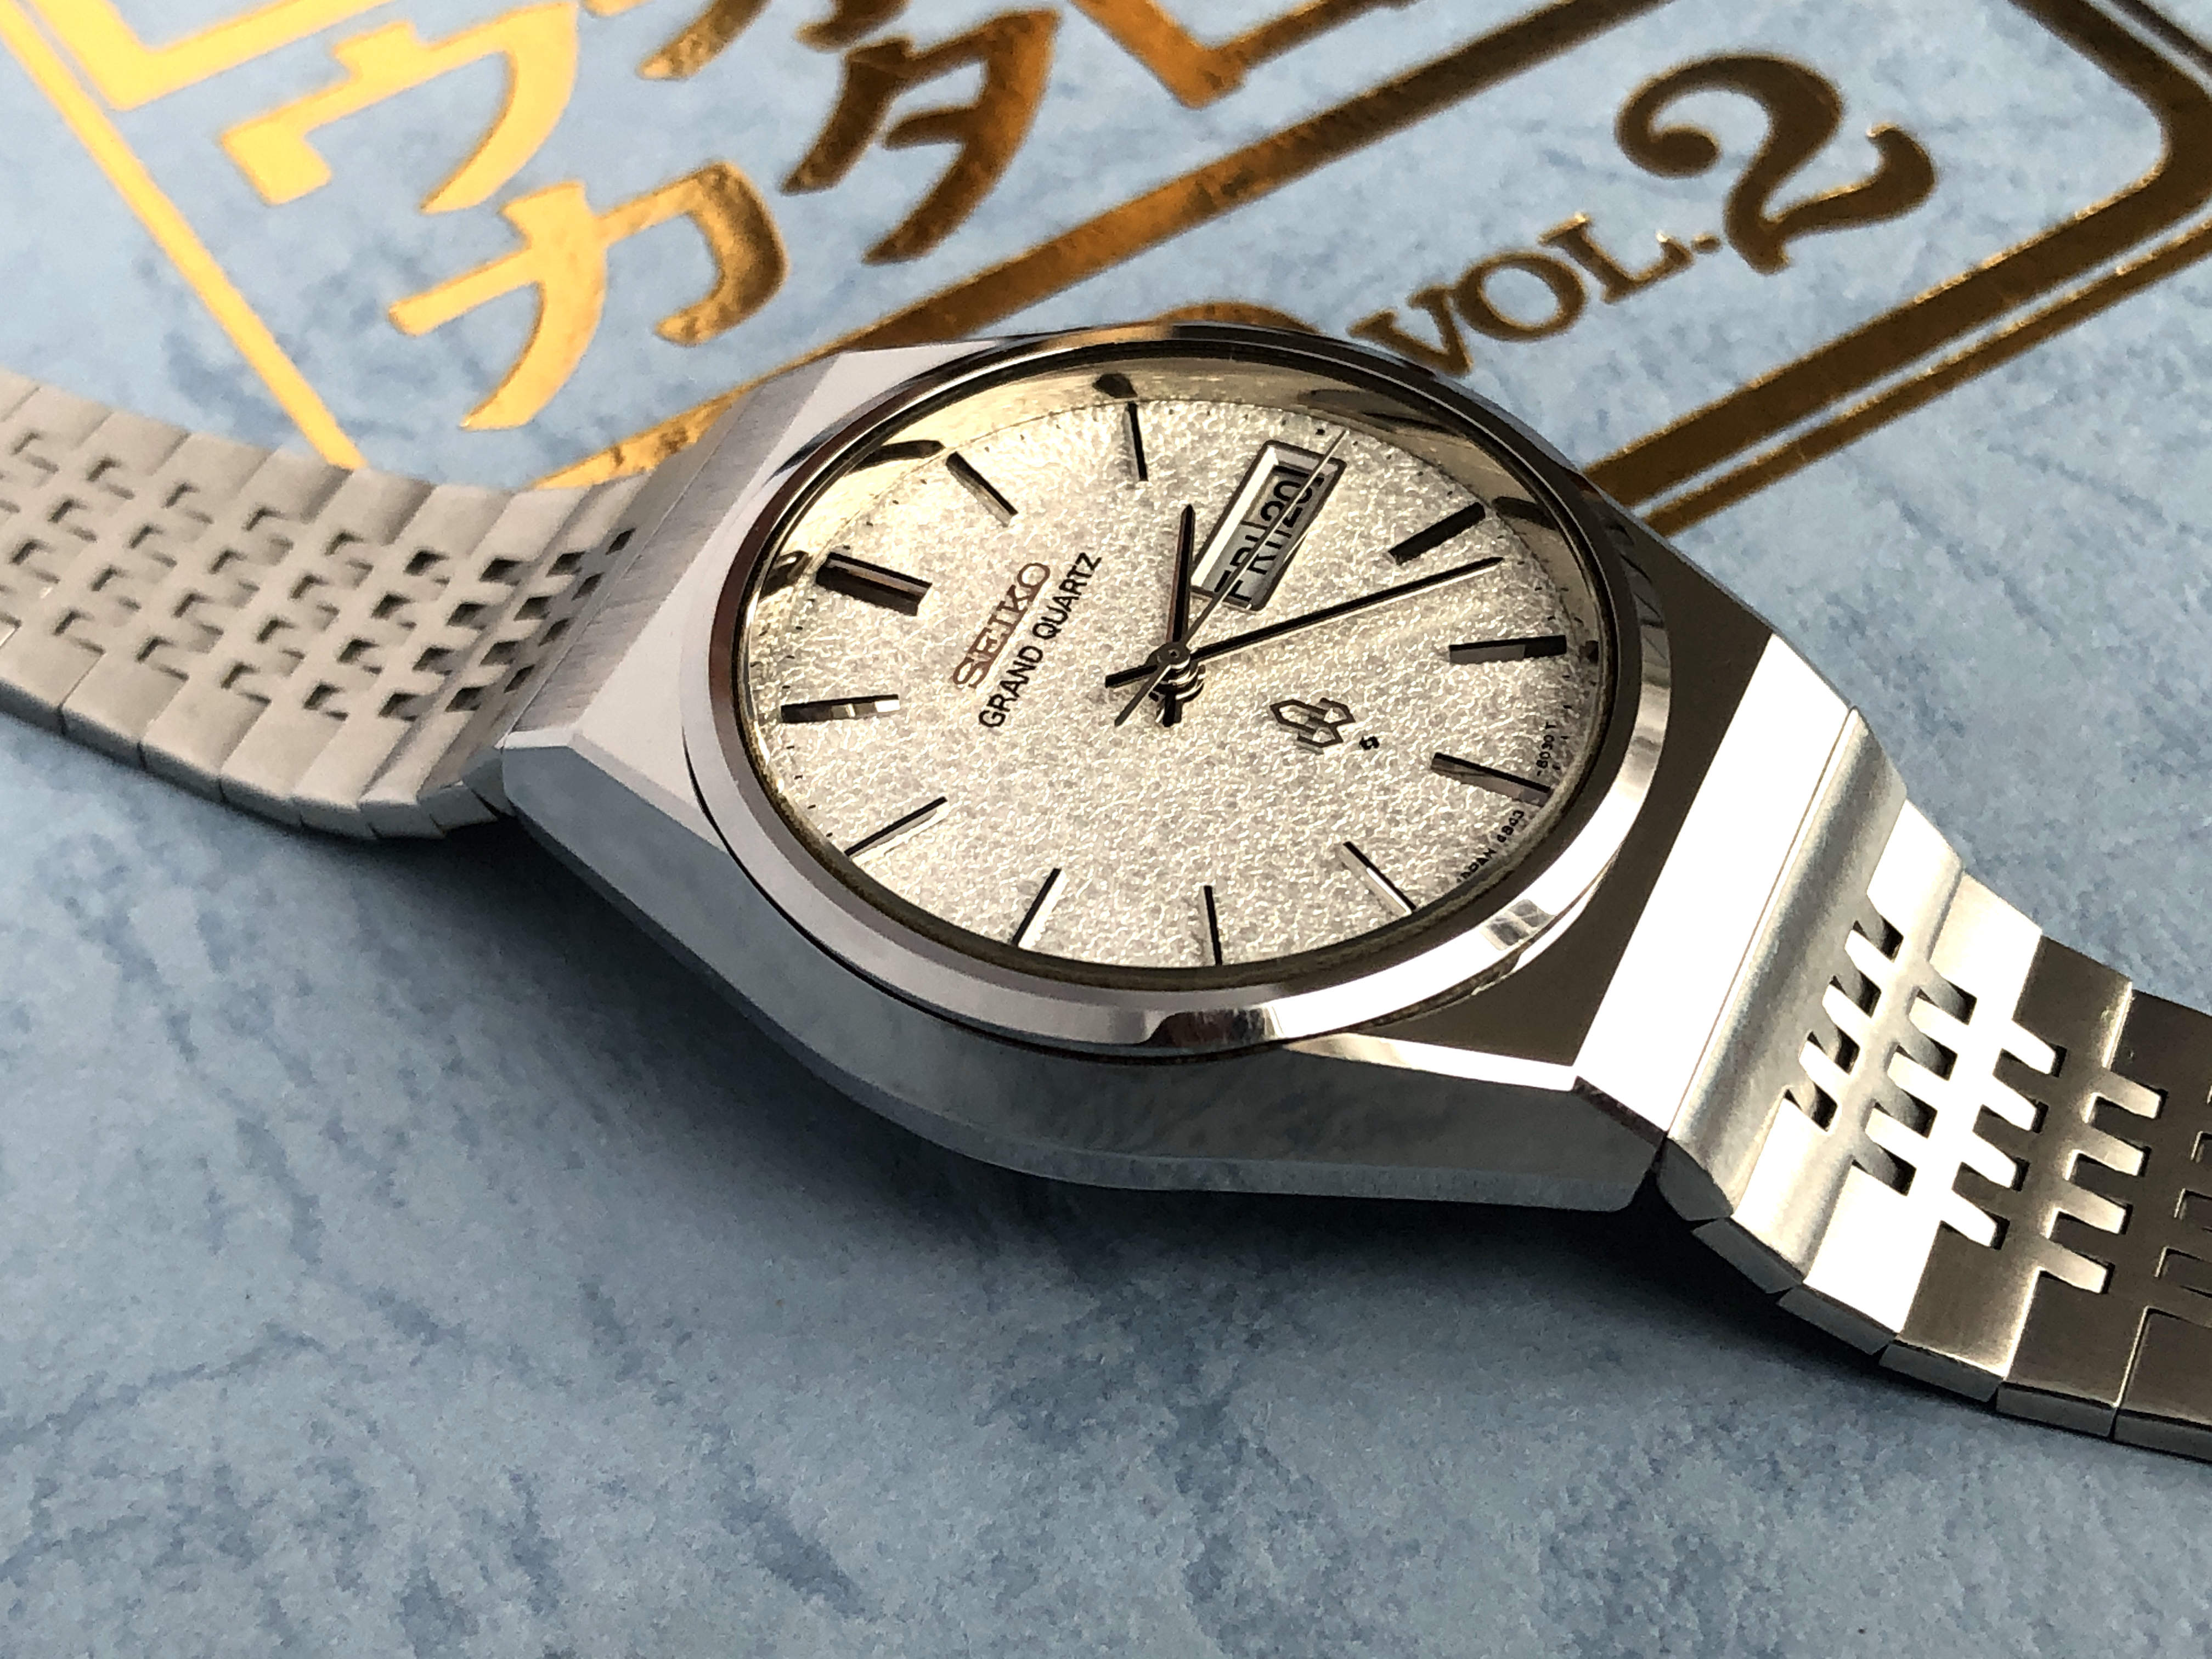 Seiko Grand Quartz 4843-8050 (Sold)